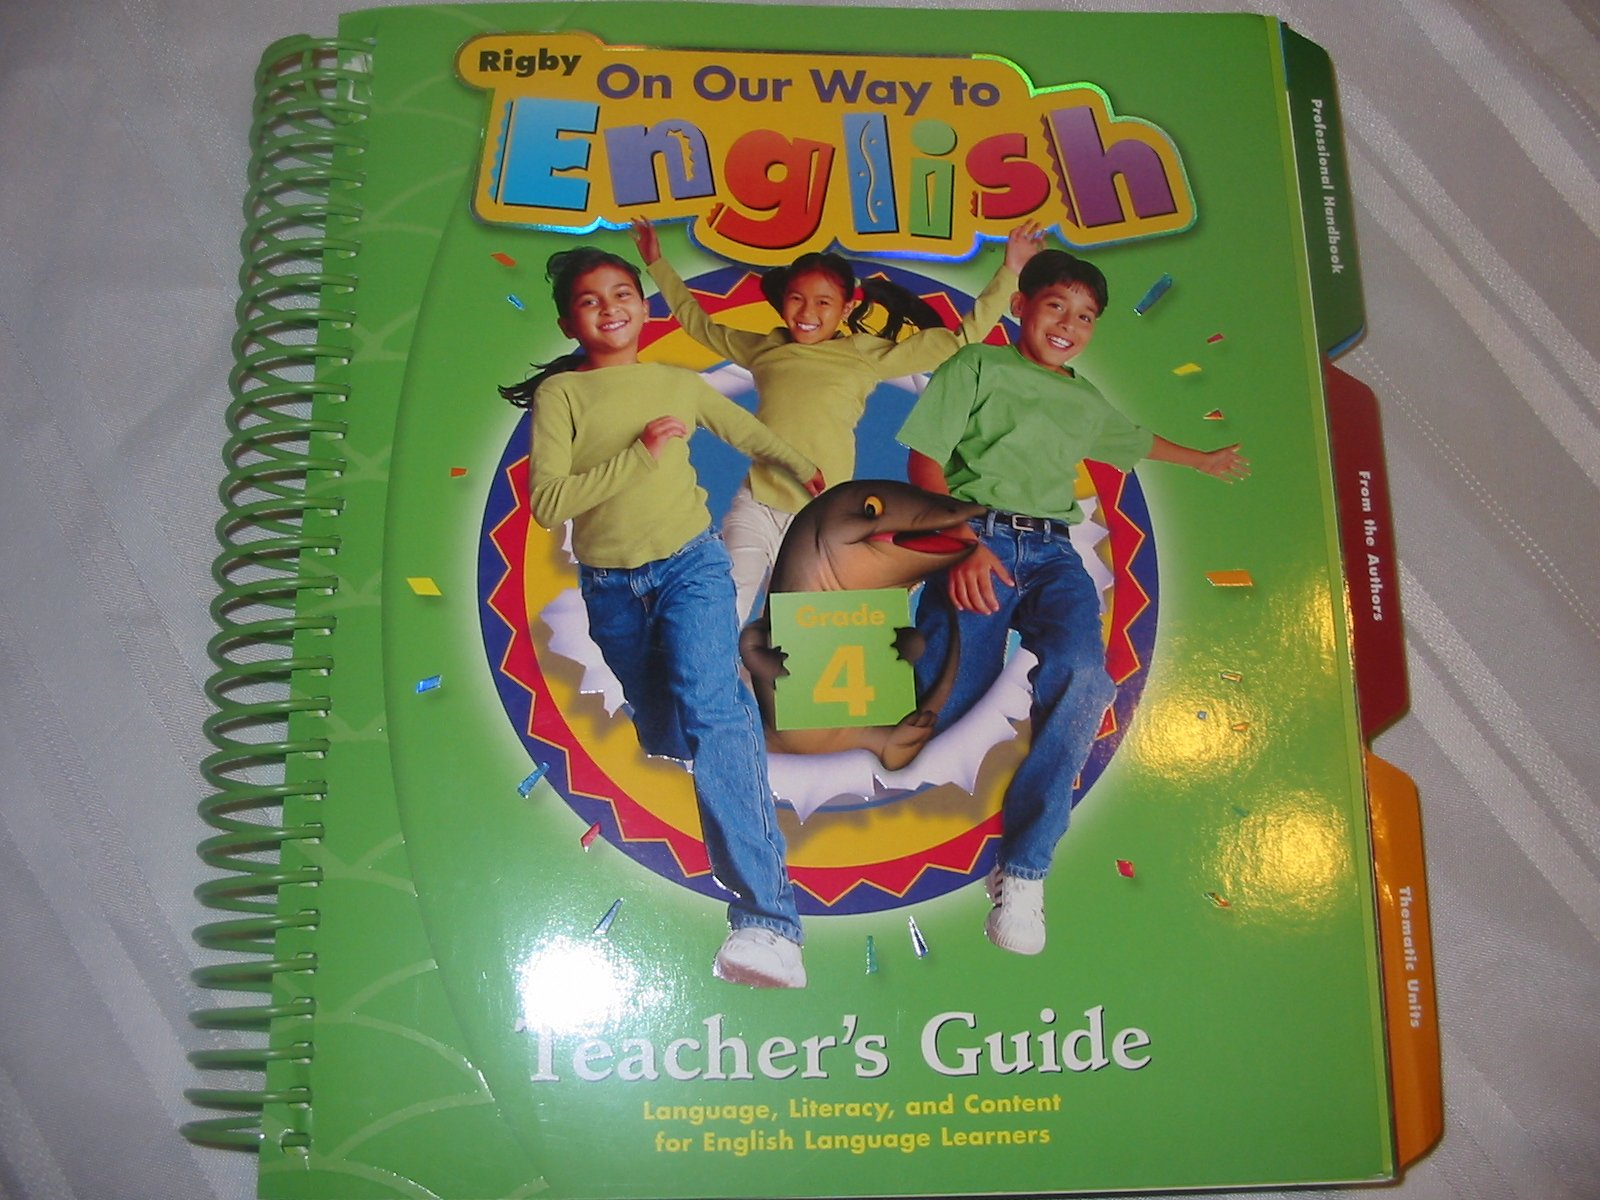 Amazon.com: On Our Way to English Teacher's Guide, Grade 4 (9780757844188):  RIGBY: Books